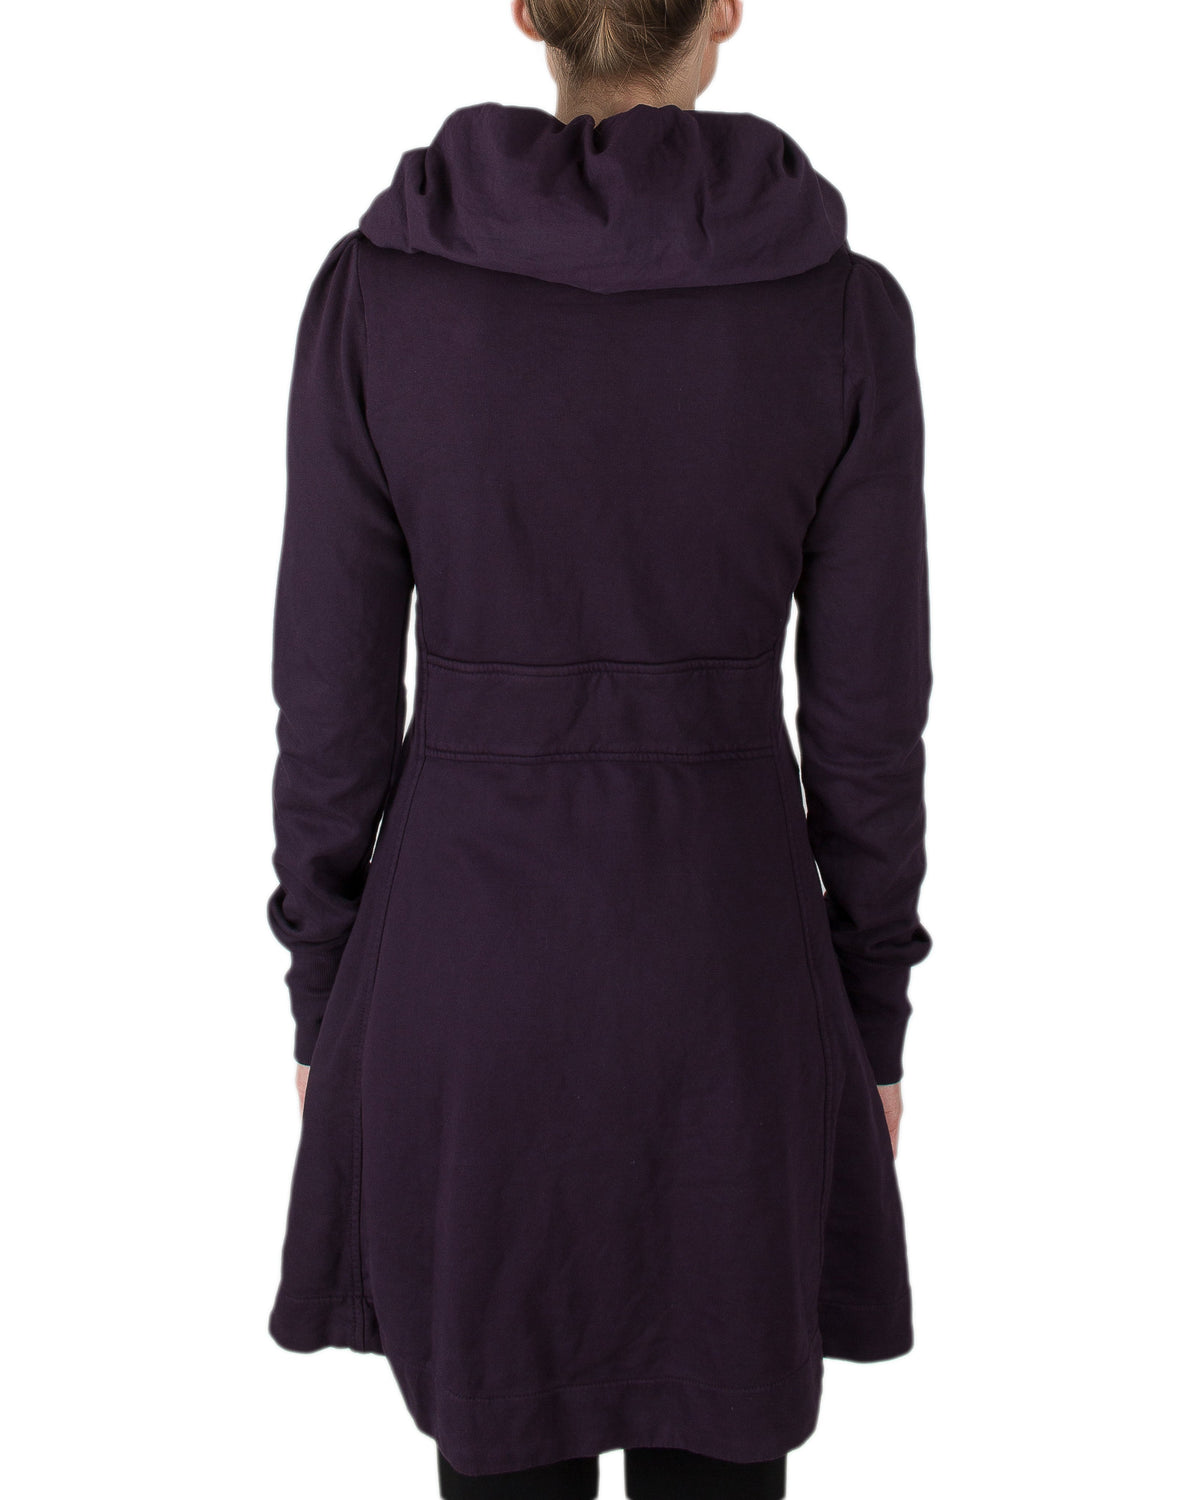 Prairie Underground Clothing Long Cloak Hoodie in Ink Pot